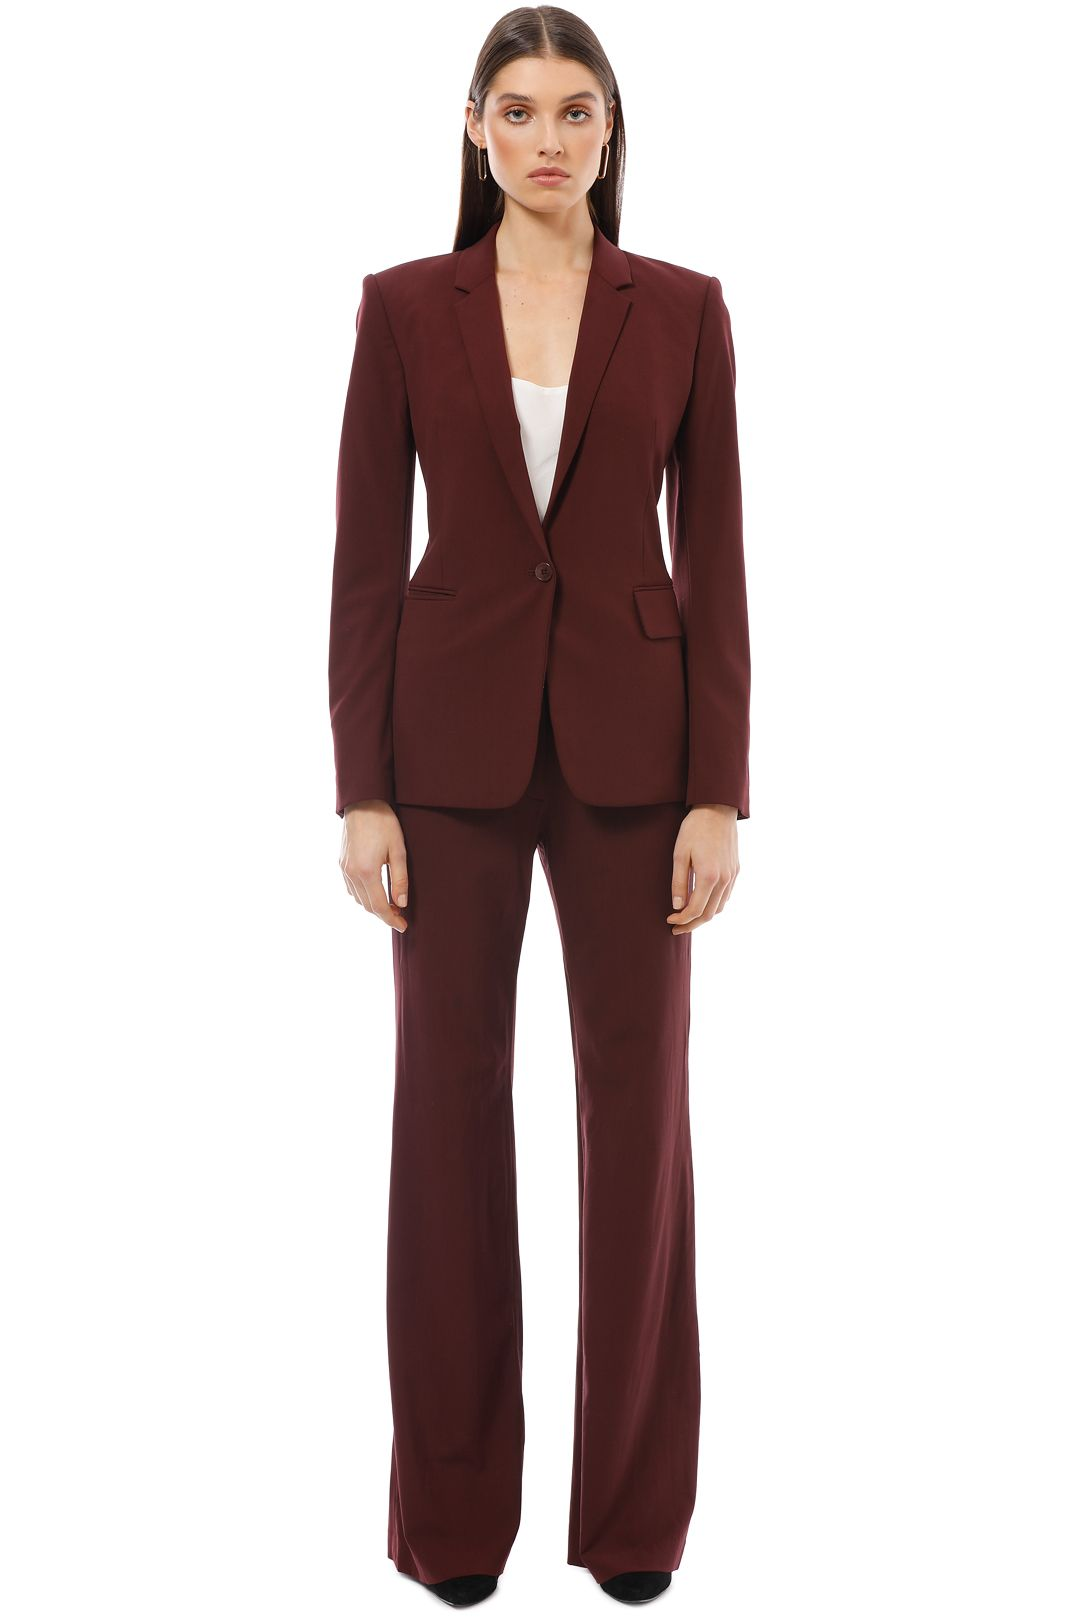 Theory - Crepe Jacket - Burgundy - Front